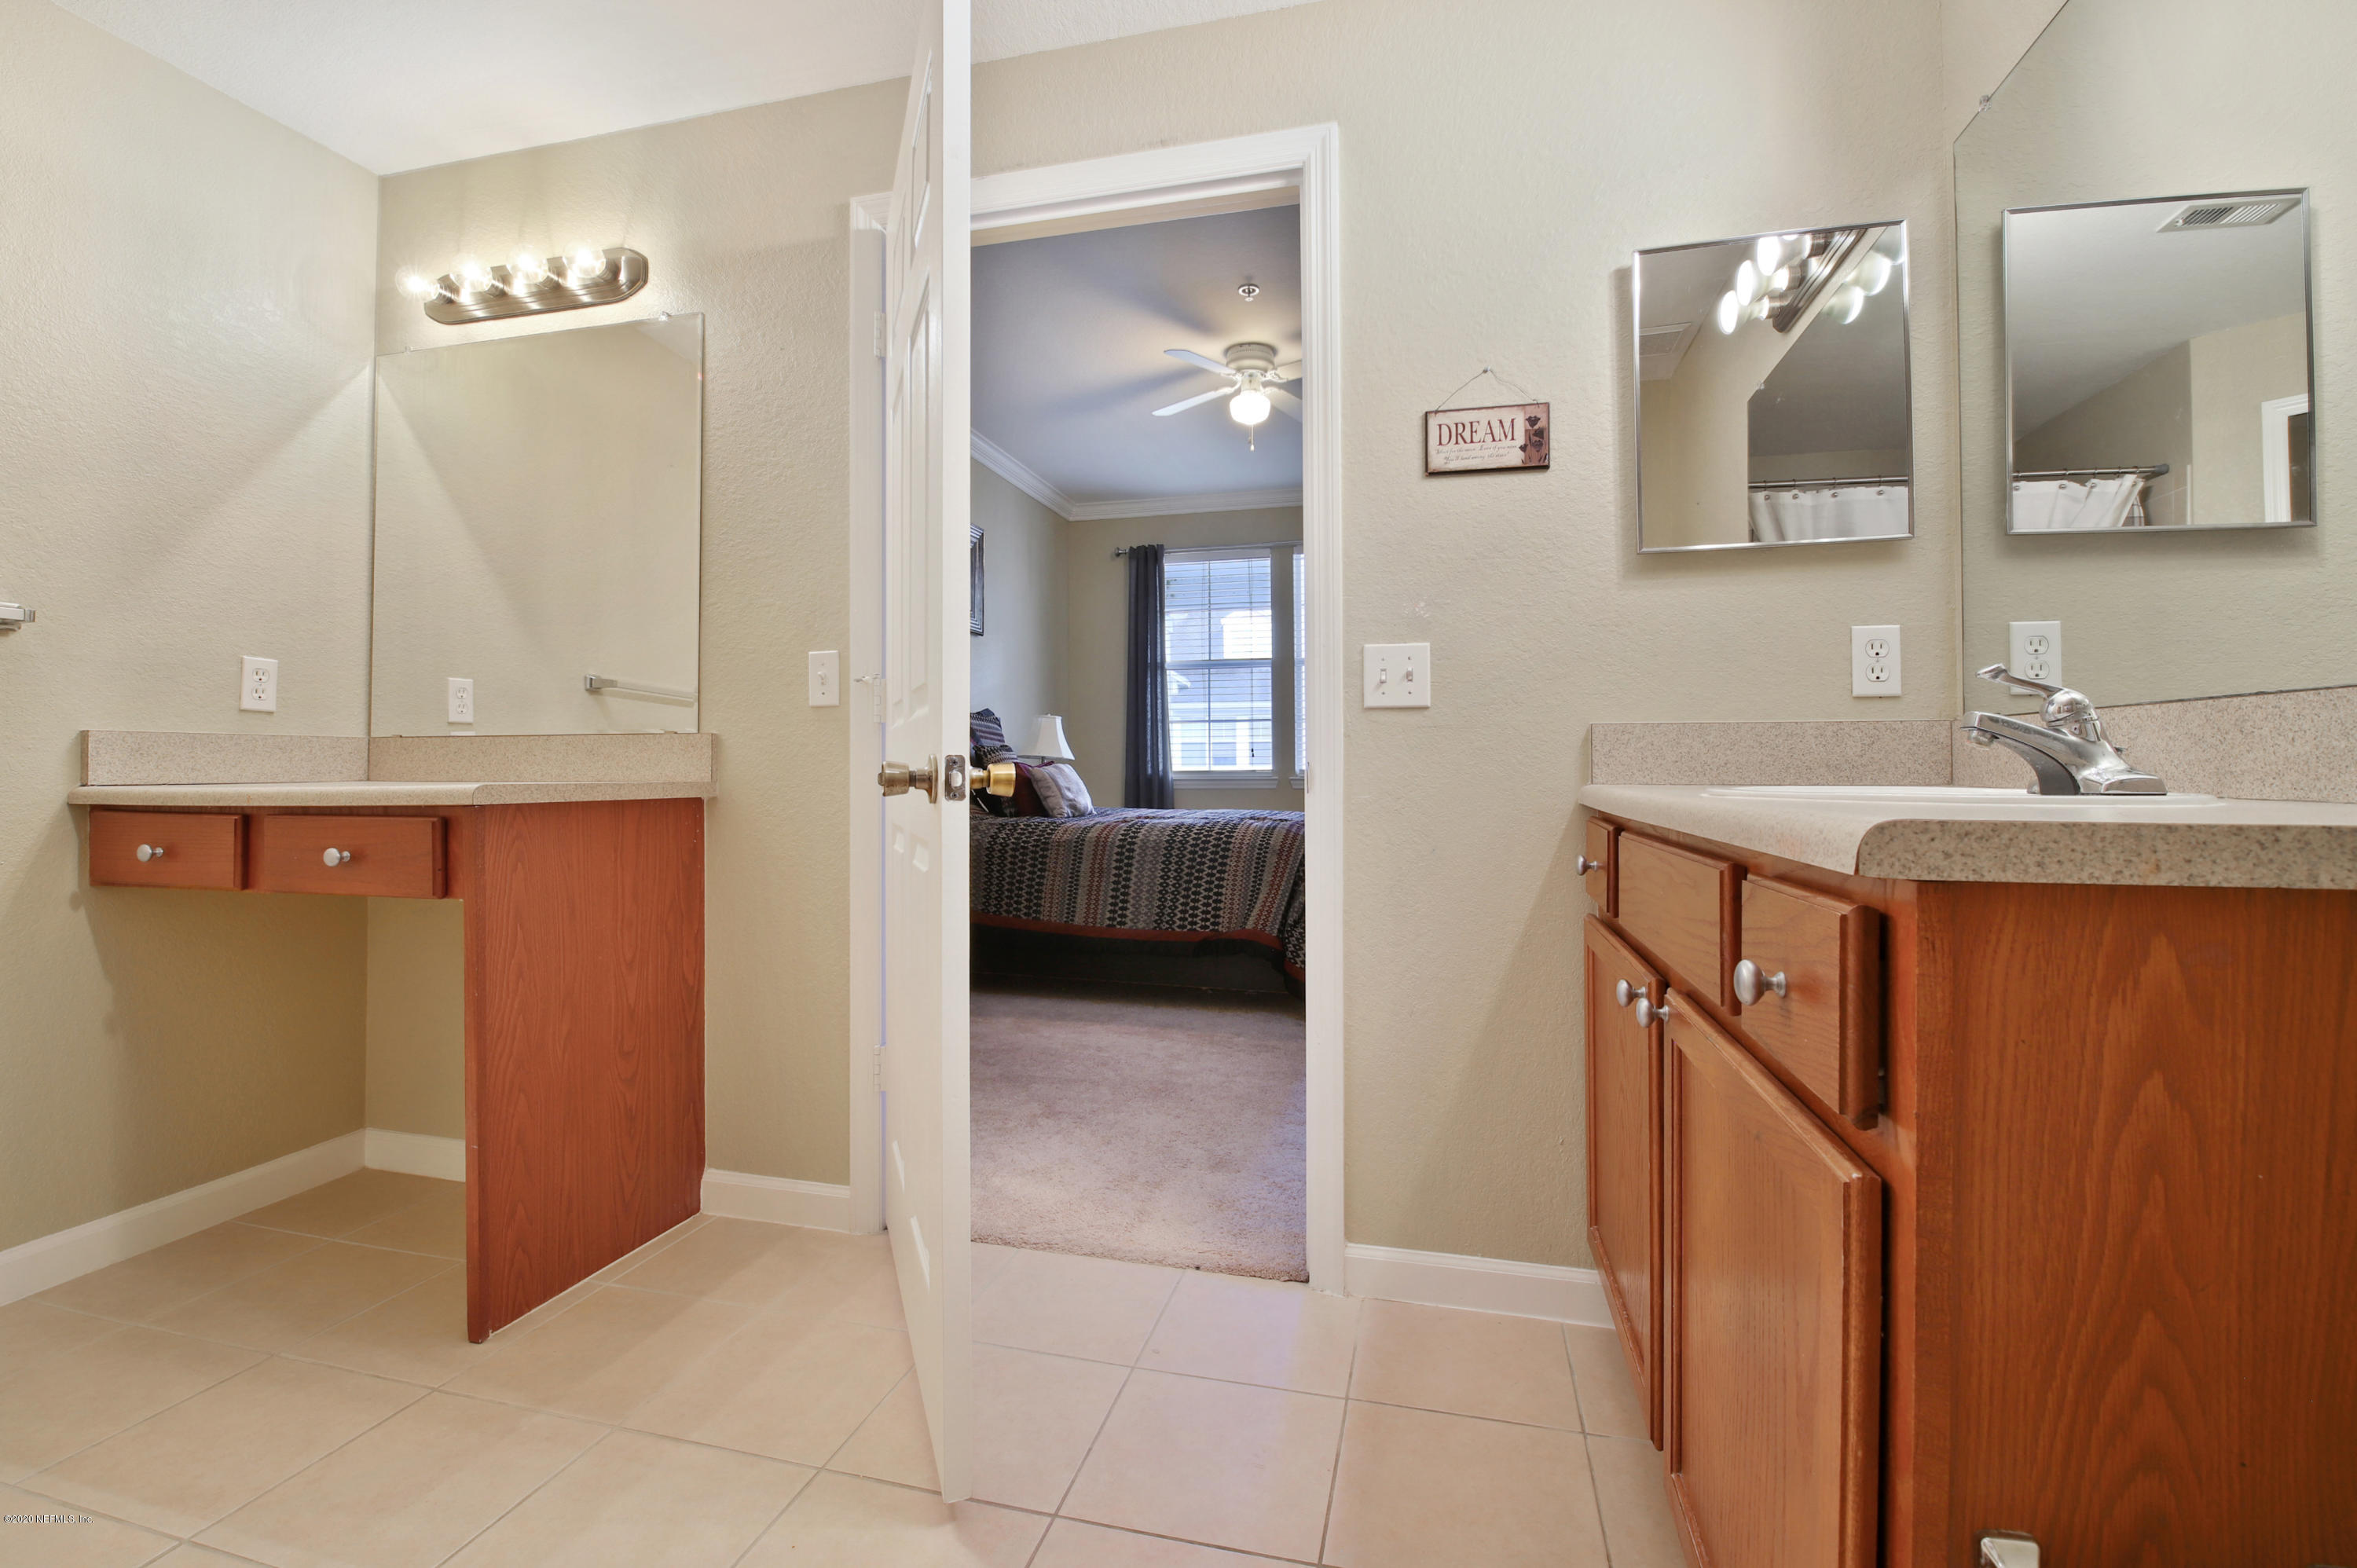 8550 TOUCHTON, JACKSONVILLE, FLORIDA 32216, 2 Bedrooms Bedrooms, ,2 BathroomsBathrooms,Residential,For sale,TOUCHTON,1058604